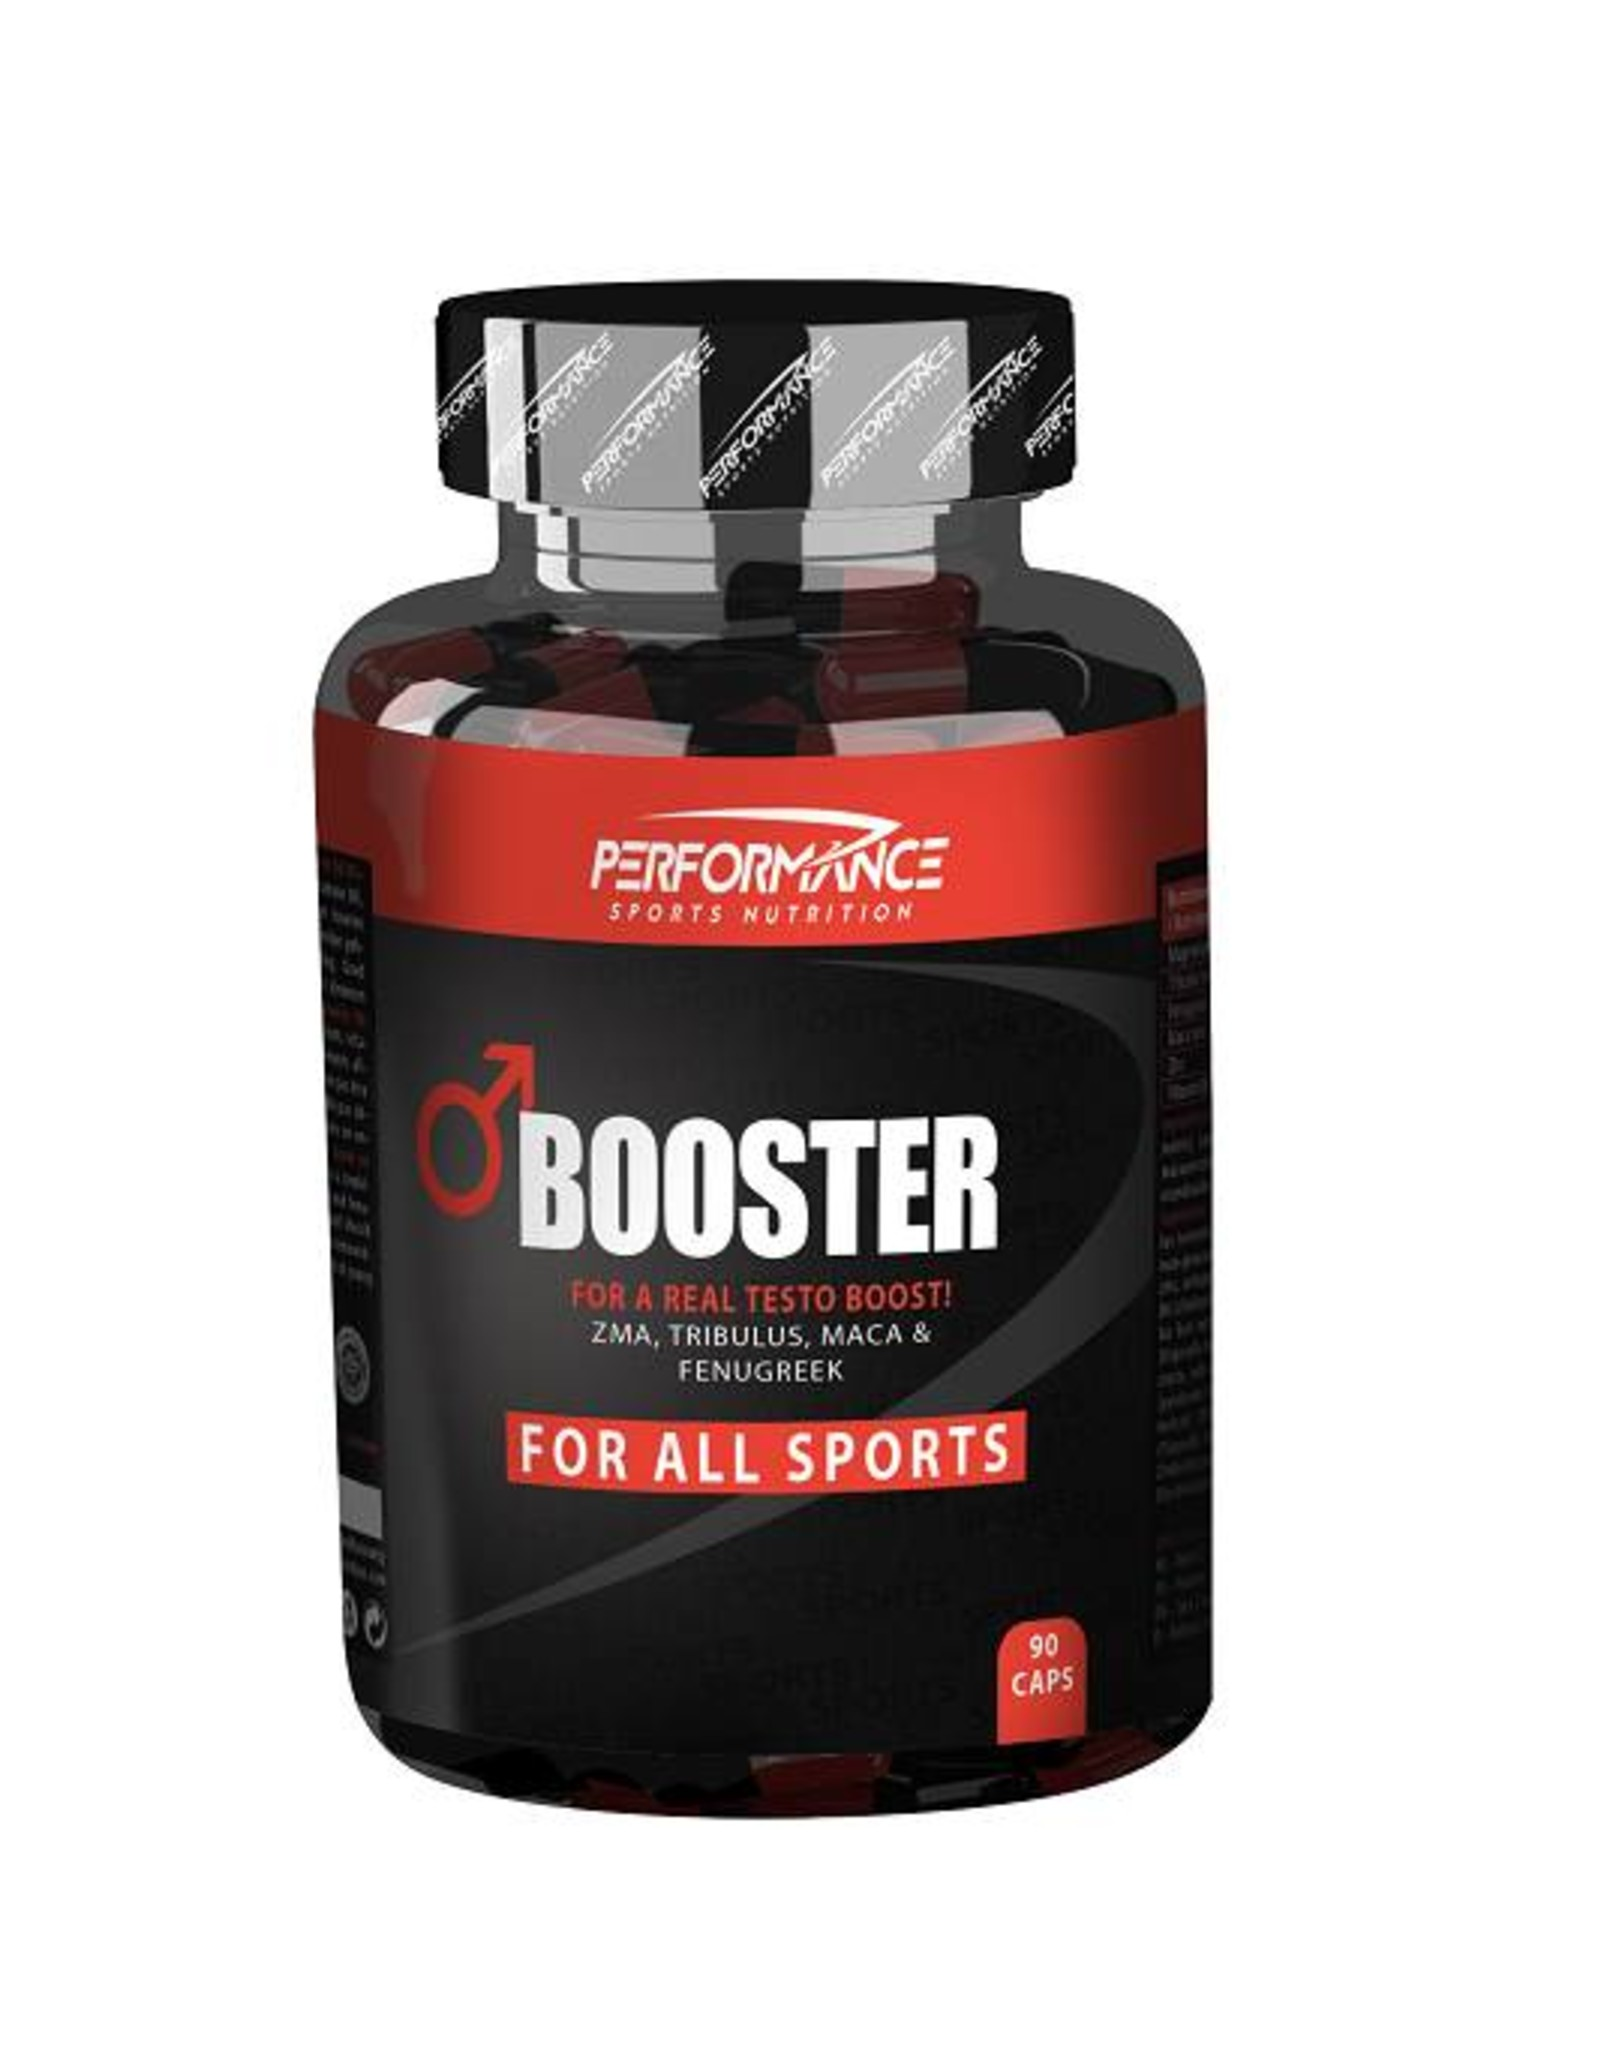 Performance Q-booster (testobooster)